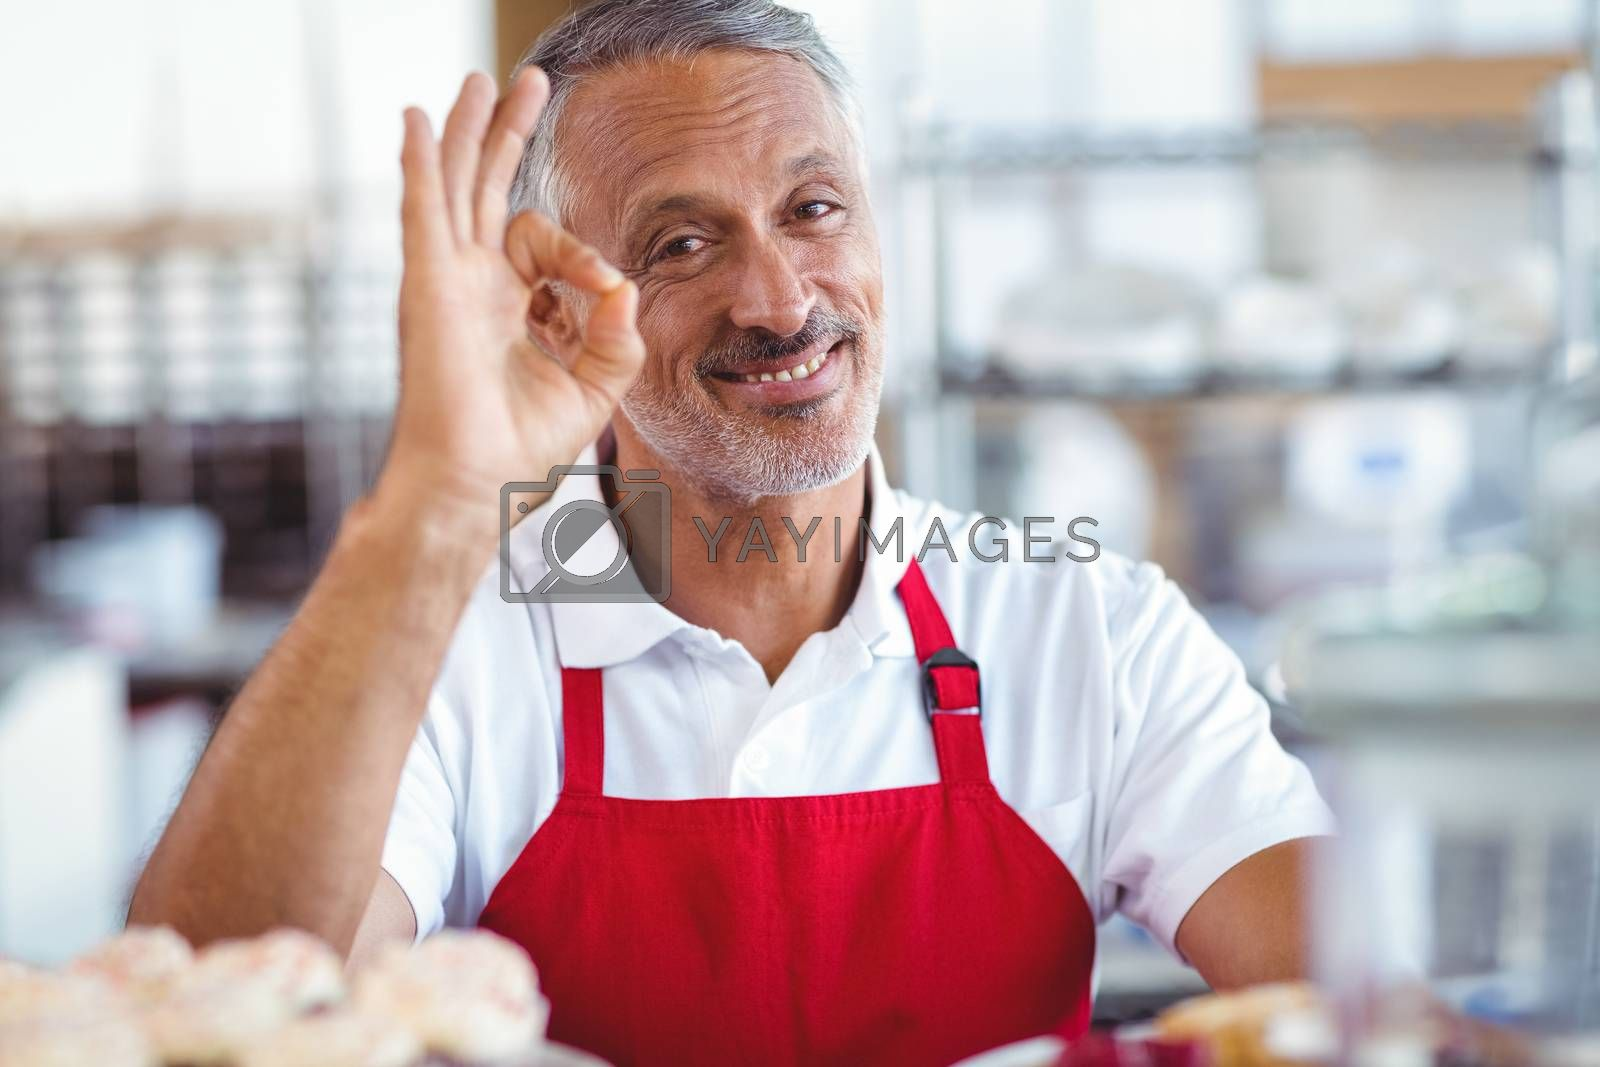 Royalty free image of Happy barista looking at camera and gesturing ok sign  by Wavebreakmedia